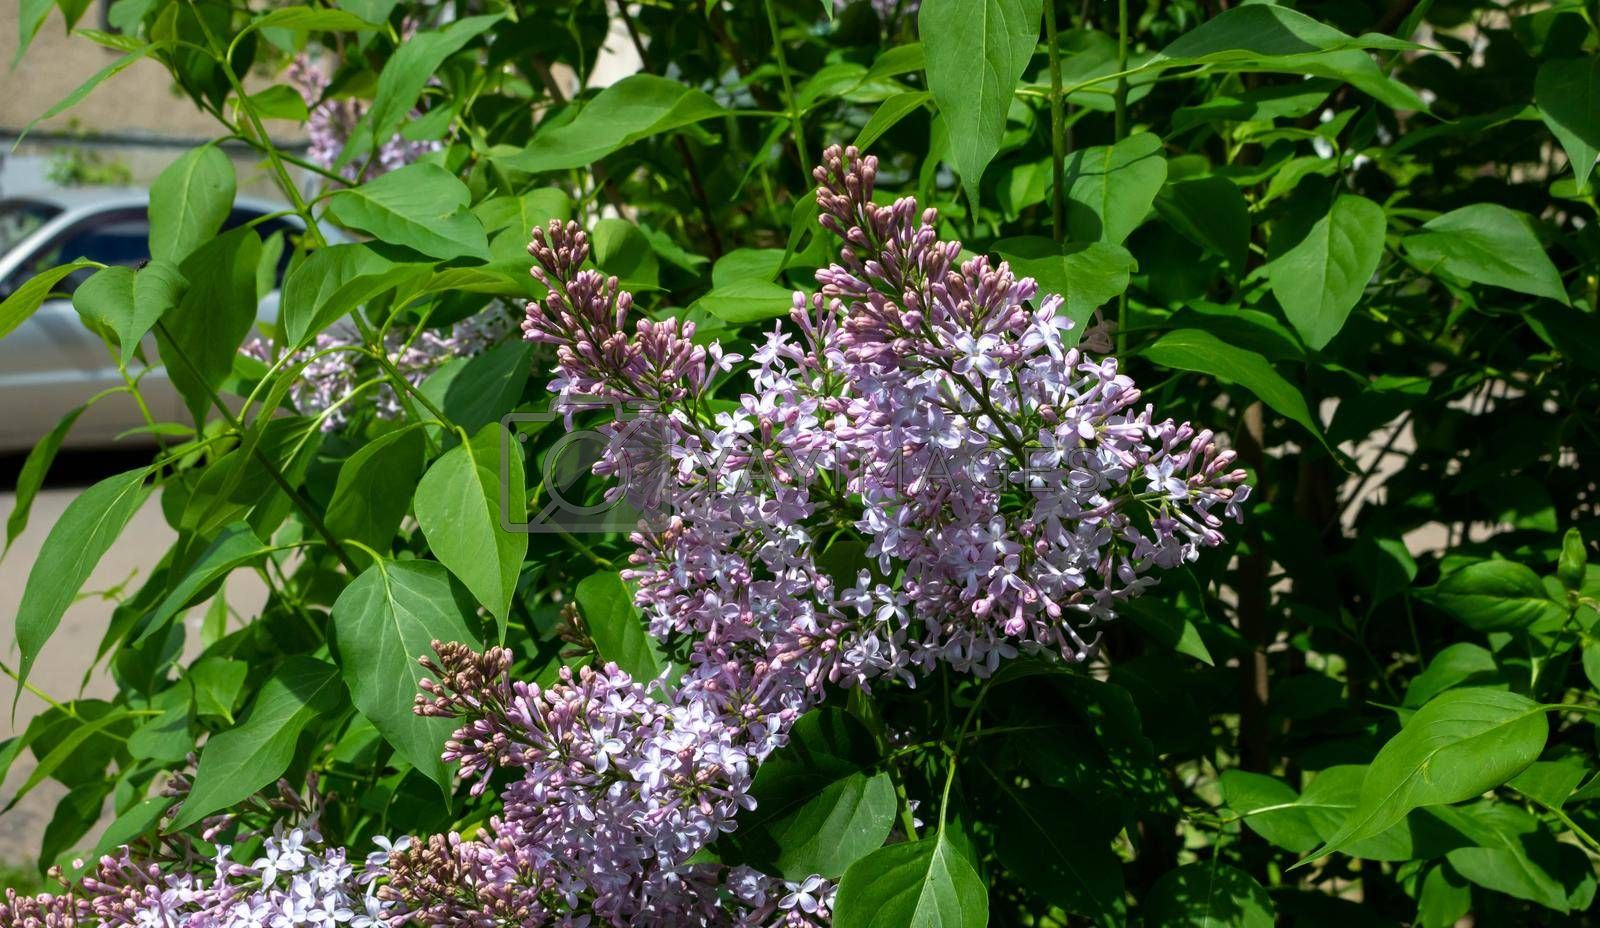 Lilac blossom flowers spring view. Spring lilac flowers. Lilac blooms. A beautiful bunch of lilac by lapushka62